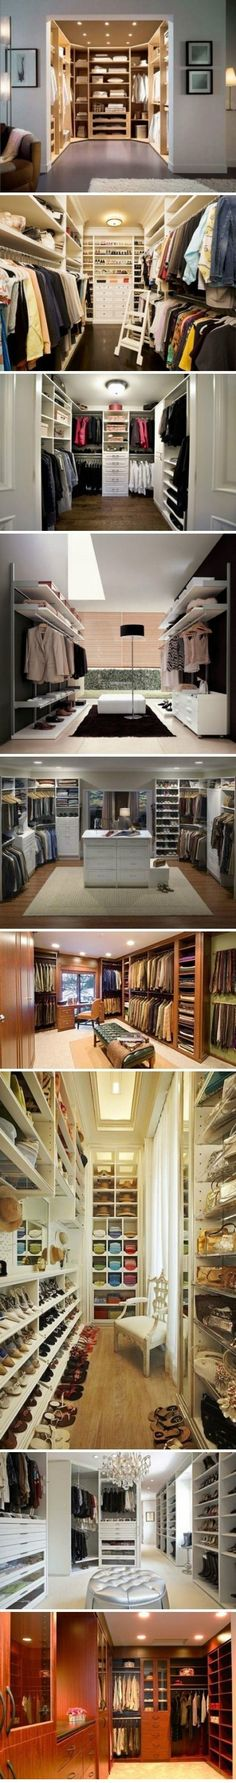 Dream walk-in wardrobe?